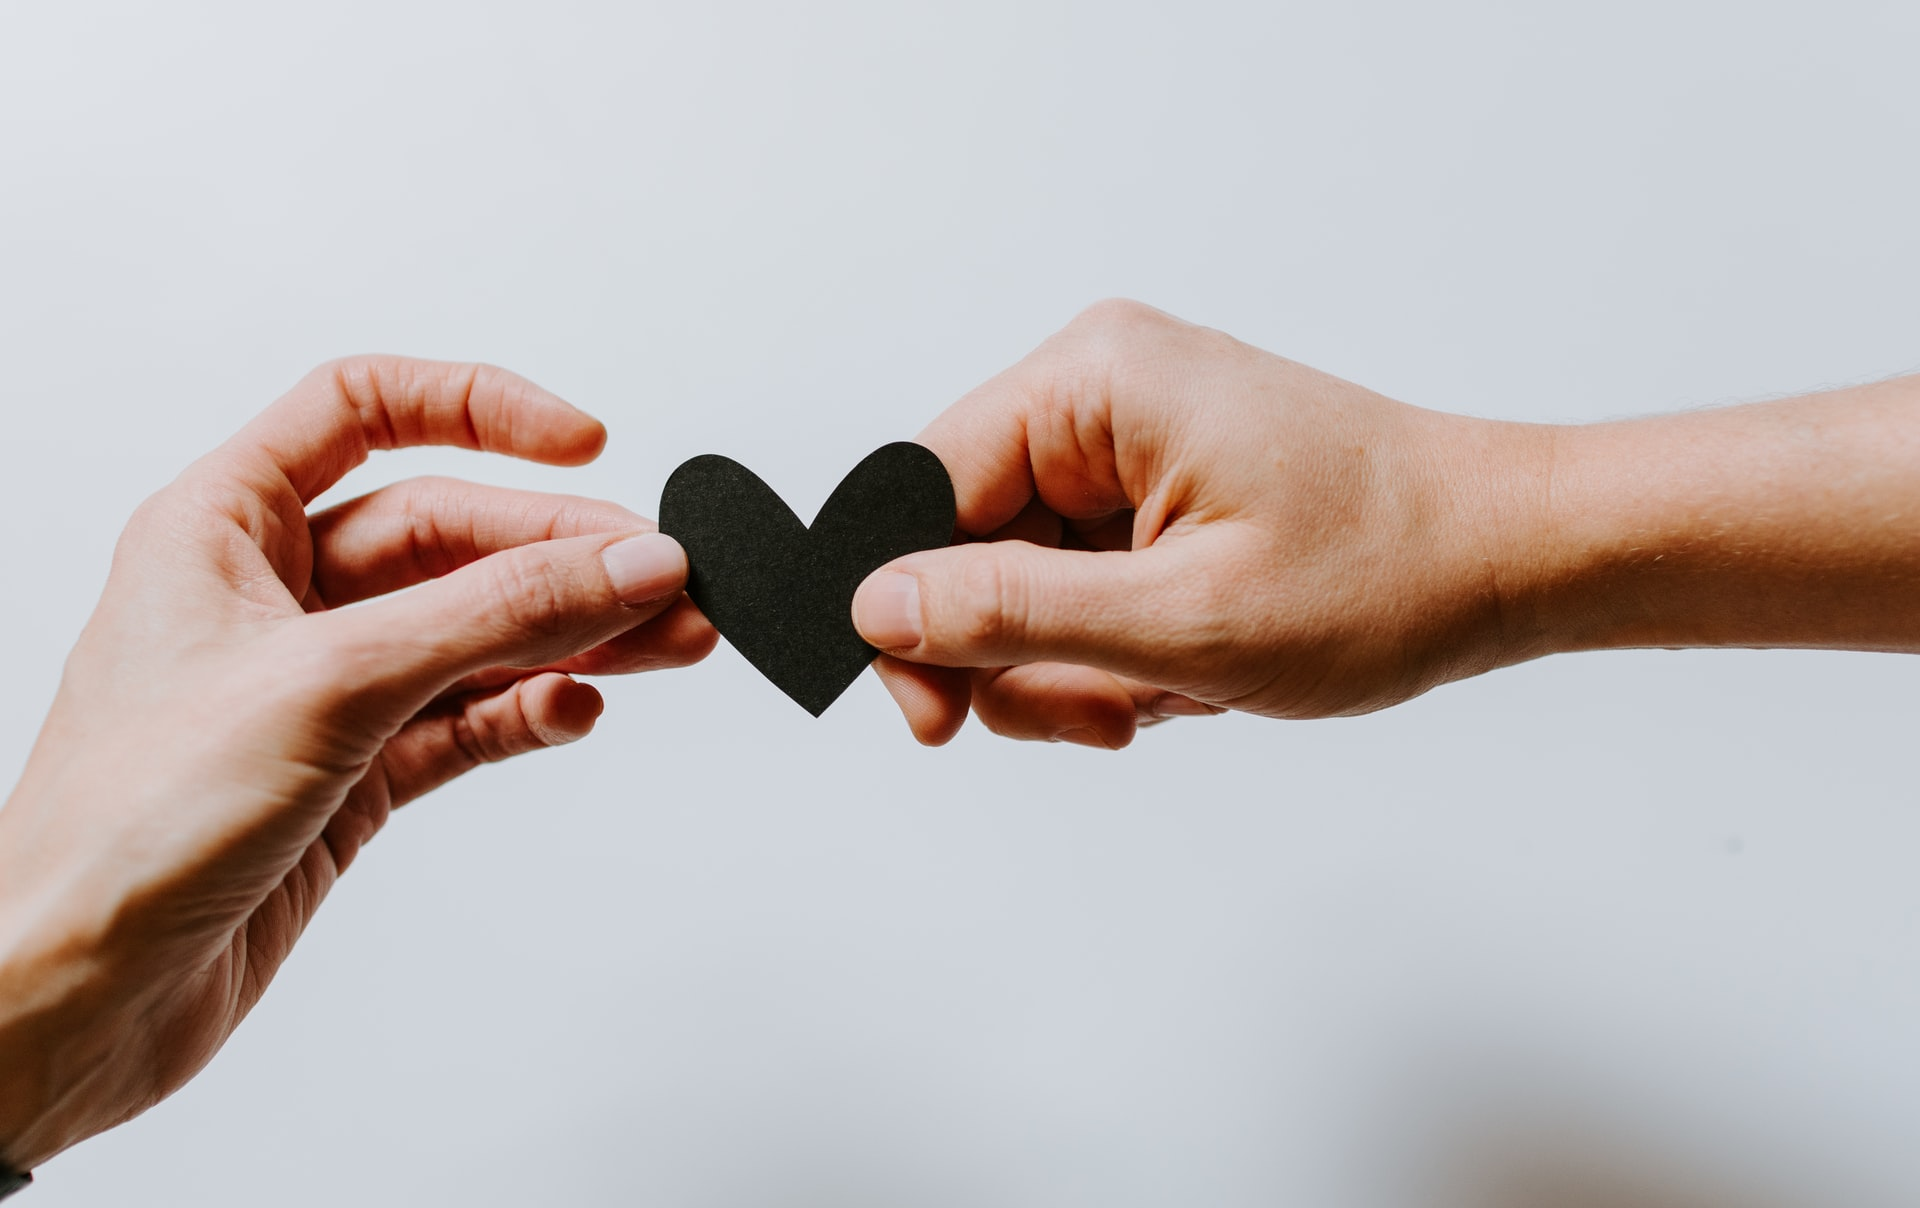 Two hands exchanging a heart